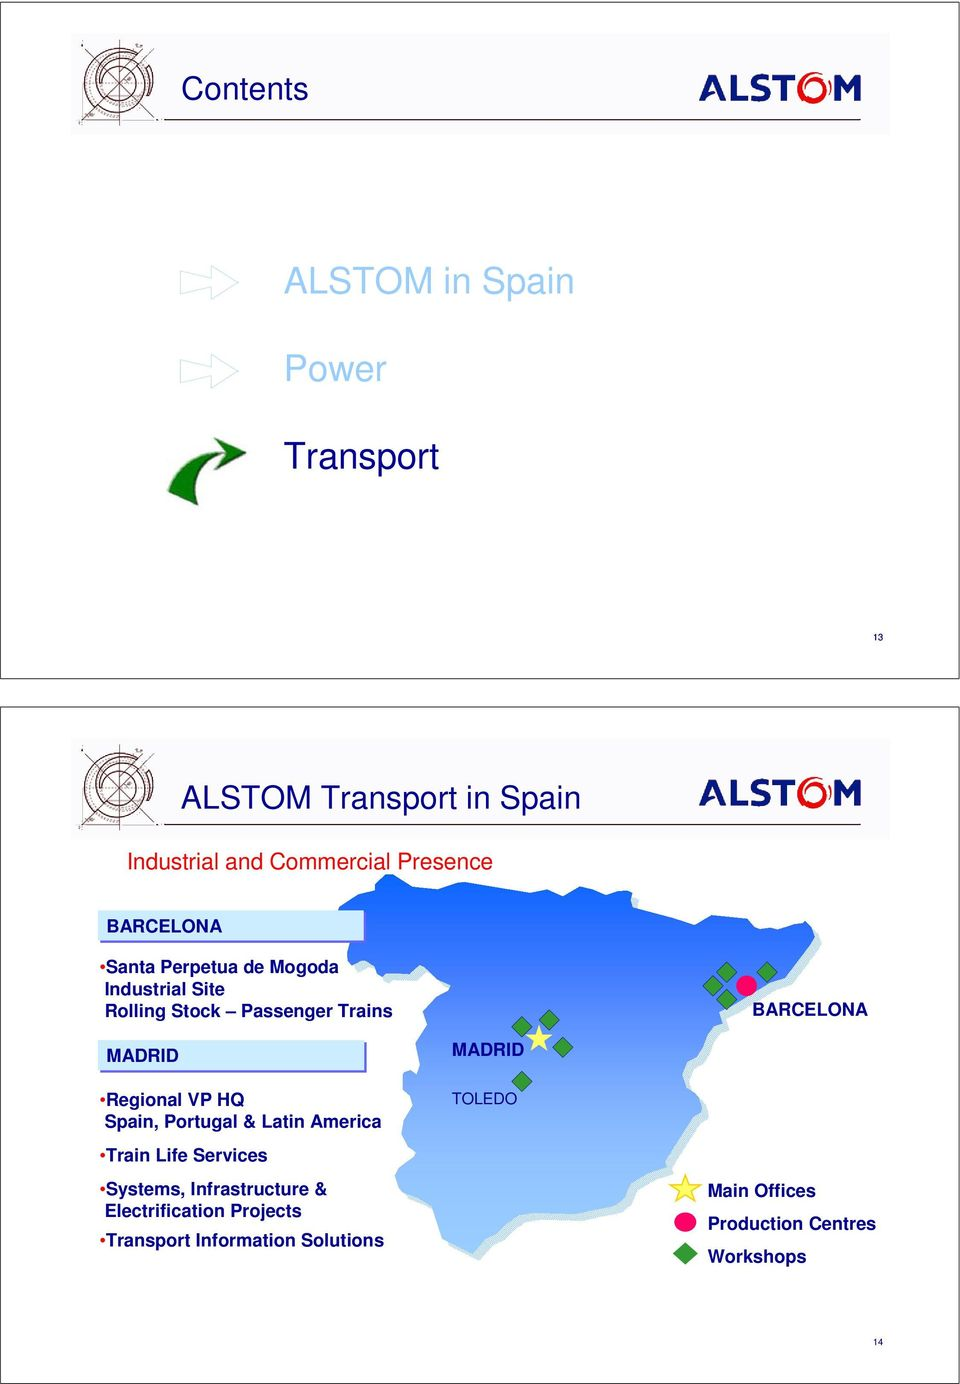 MADRID Regional VP HQ Spain, Portugal & Latin America MADRID TOLEDO Train Life Services Systems,